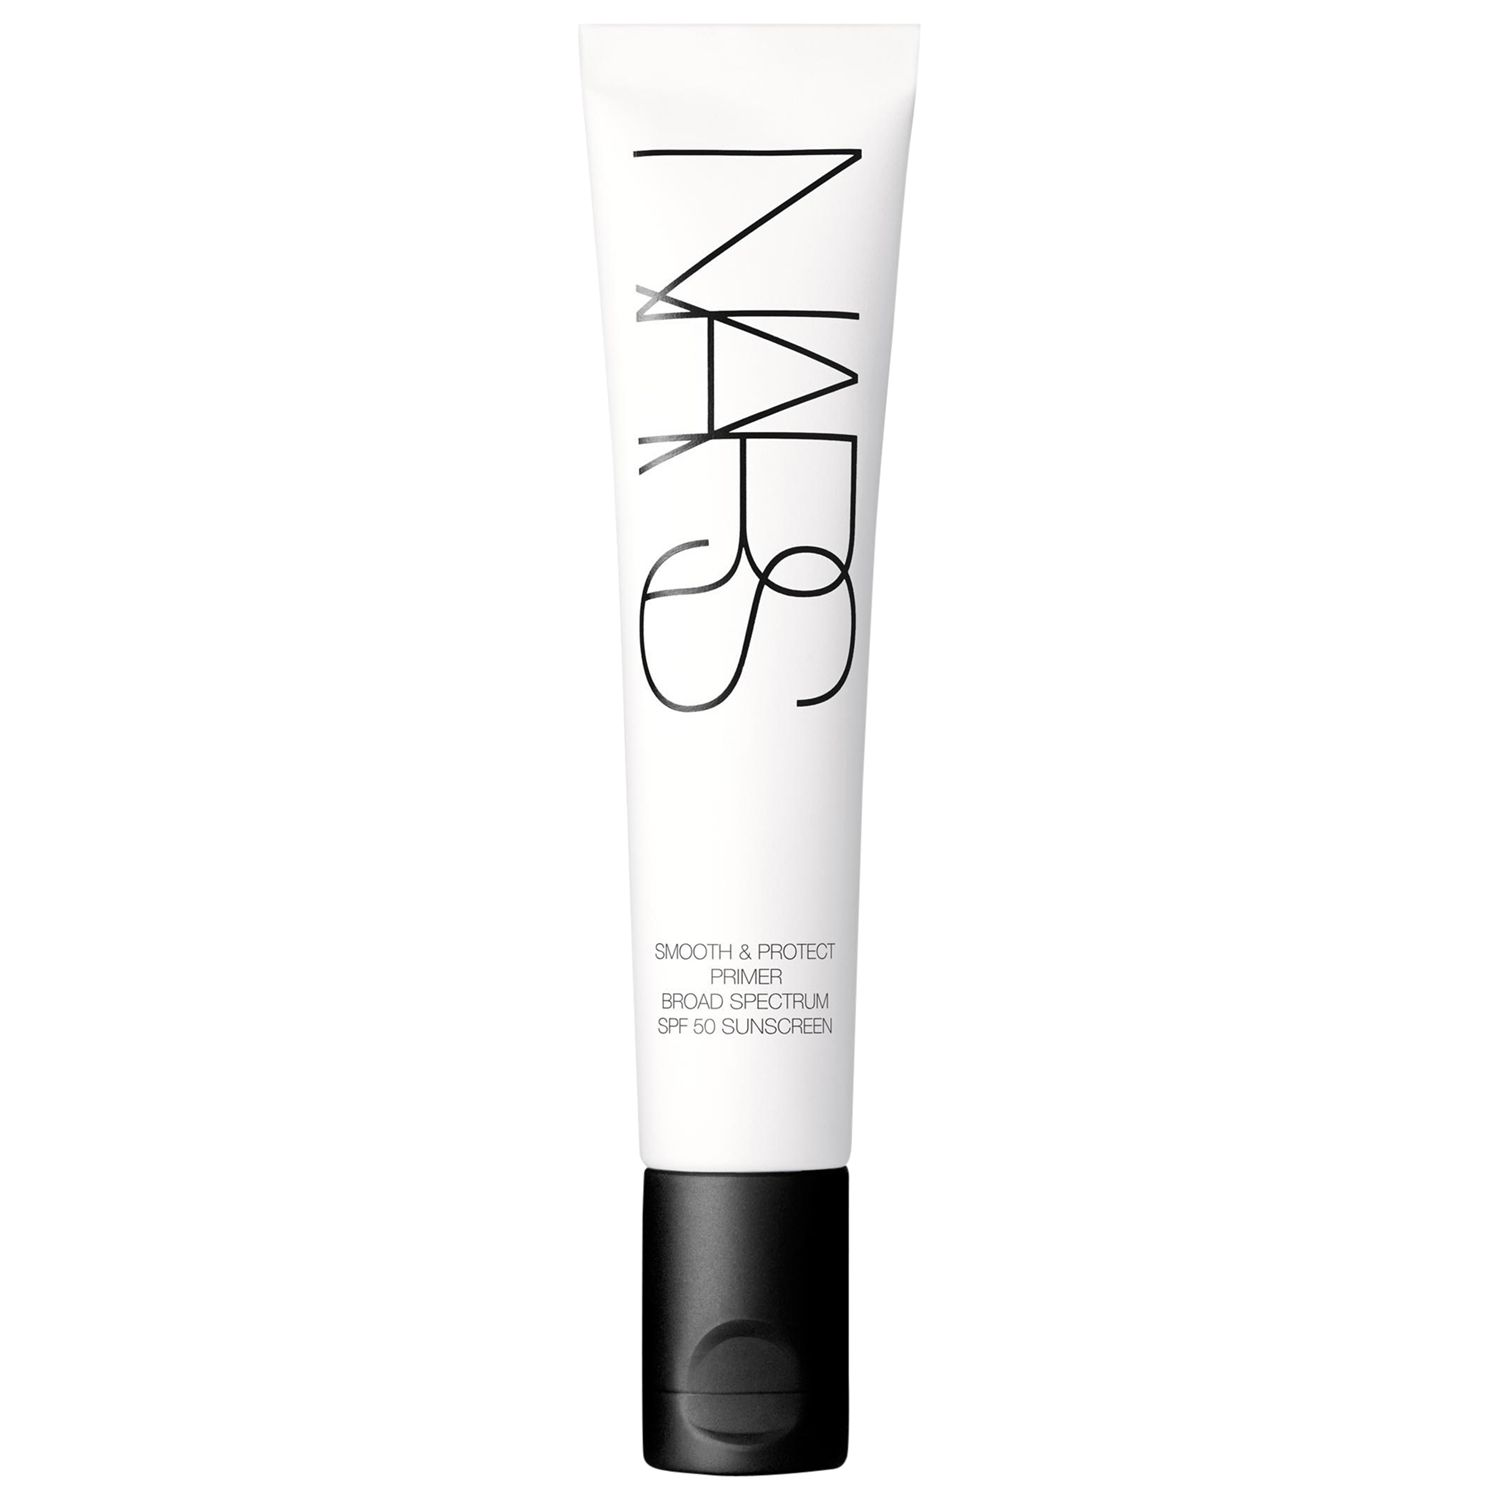 NARS NARS Smooth & Protect Primer SPF 50, 30ml